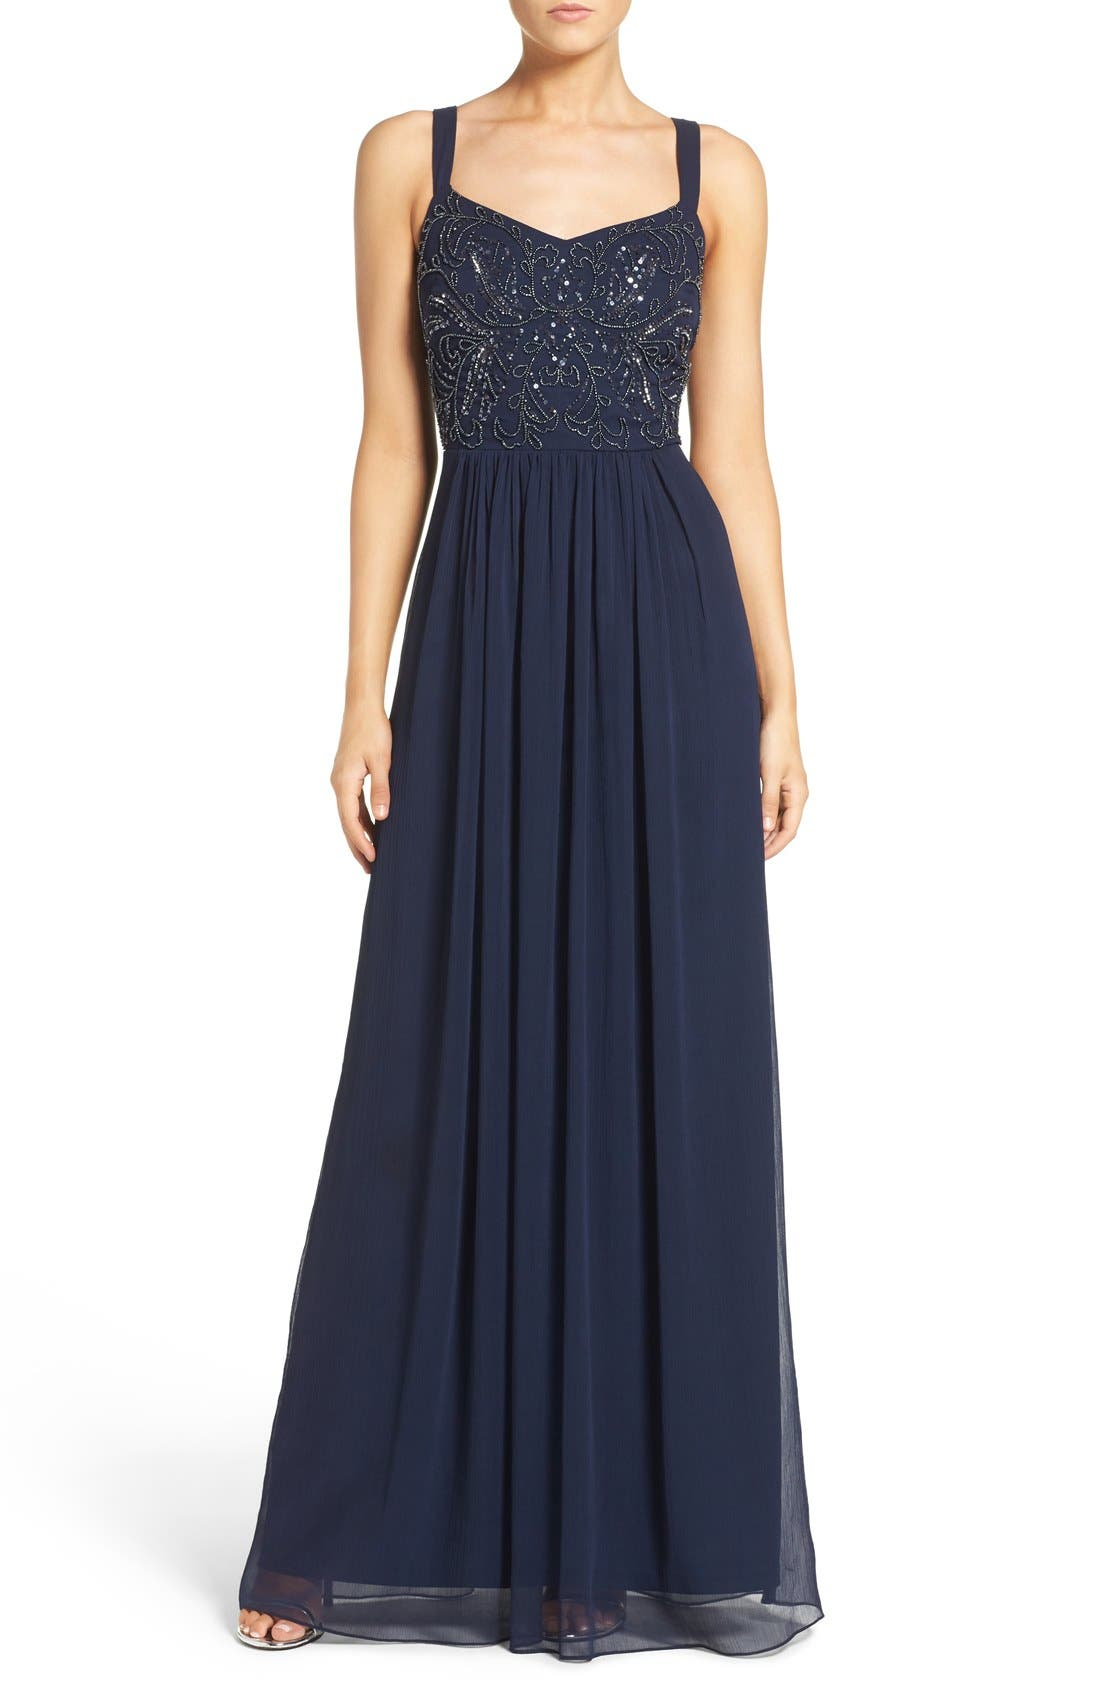 Main Image - Adrianna Papell Embellished Bodice Chiffon Gown